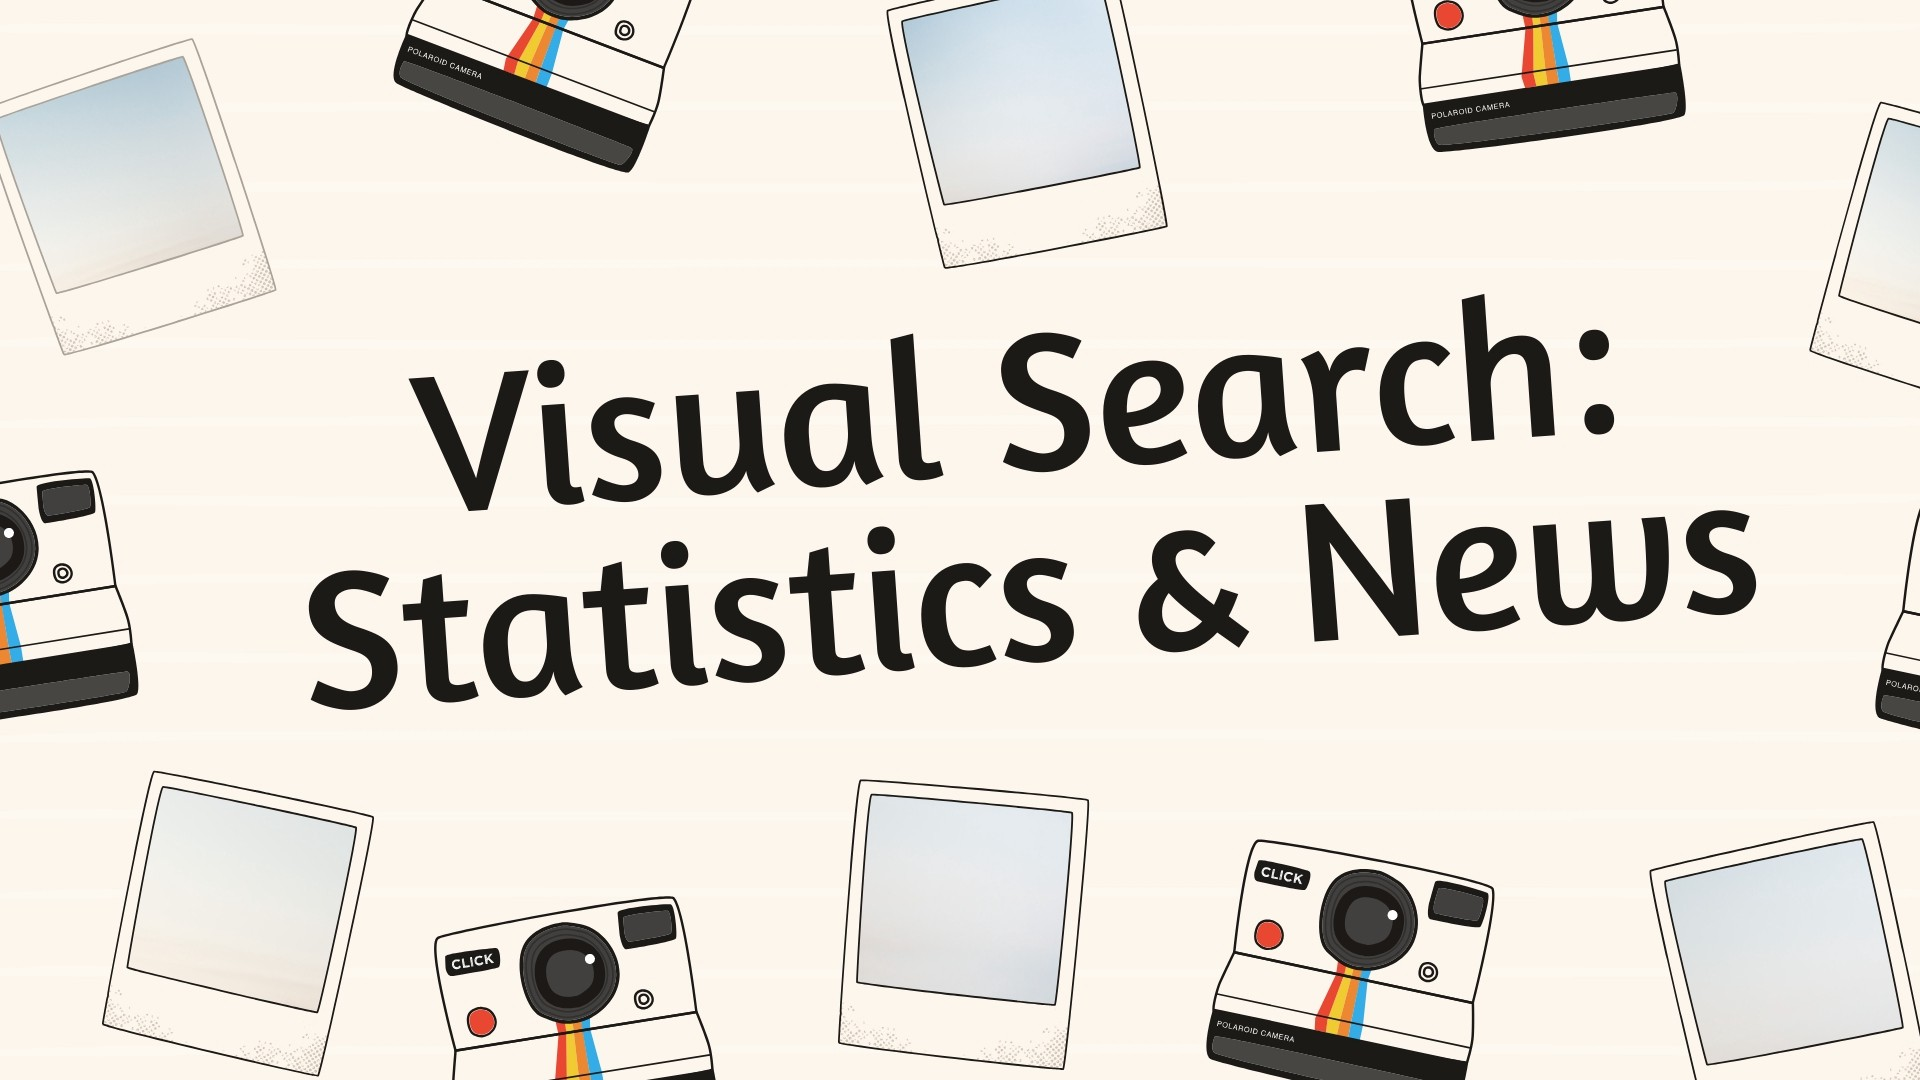 visual search applications in life